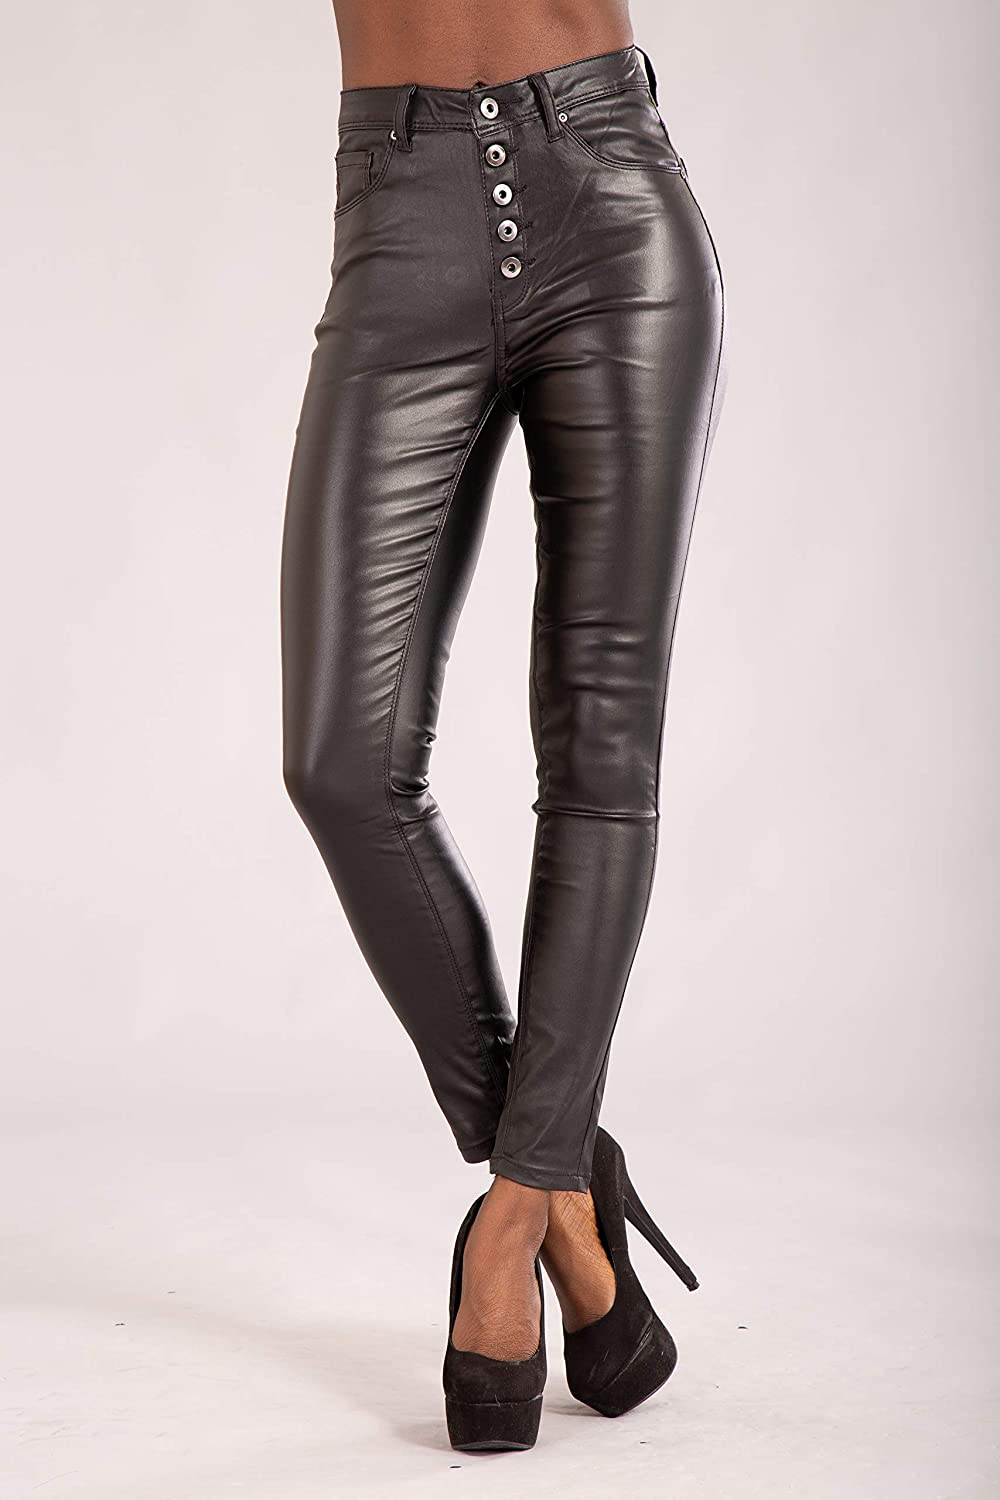 a5a92c3b40bb Glook Womens Leather Look Trousers High Waist Slim Fit Skinny Butt Lifting Black  Jeans: Amazon.co.uk: Clothing